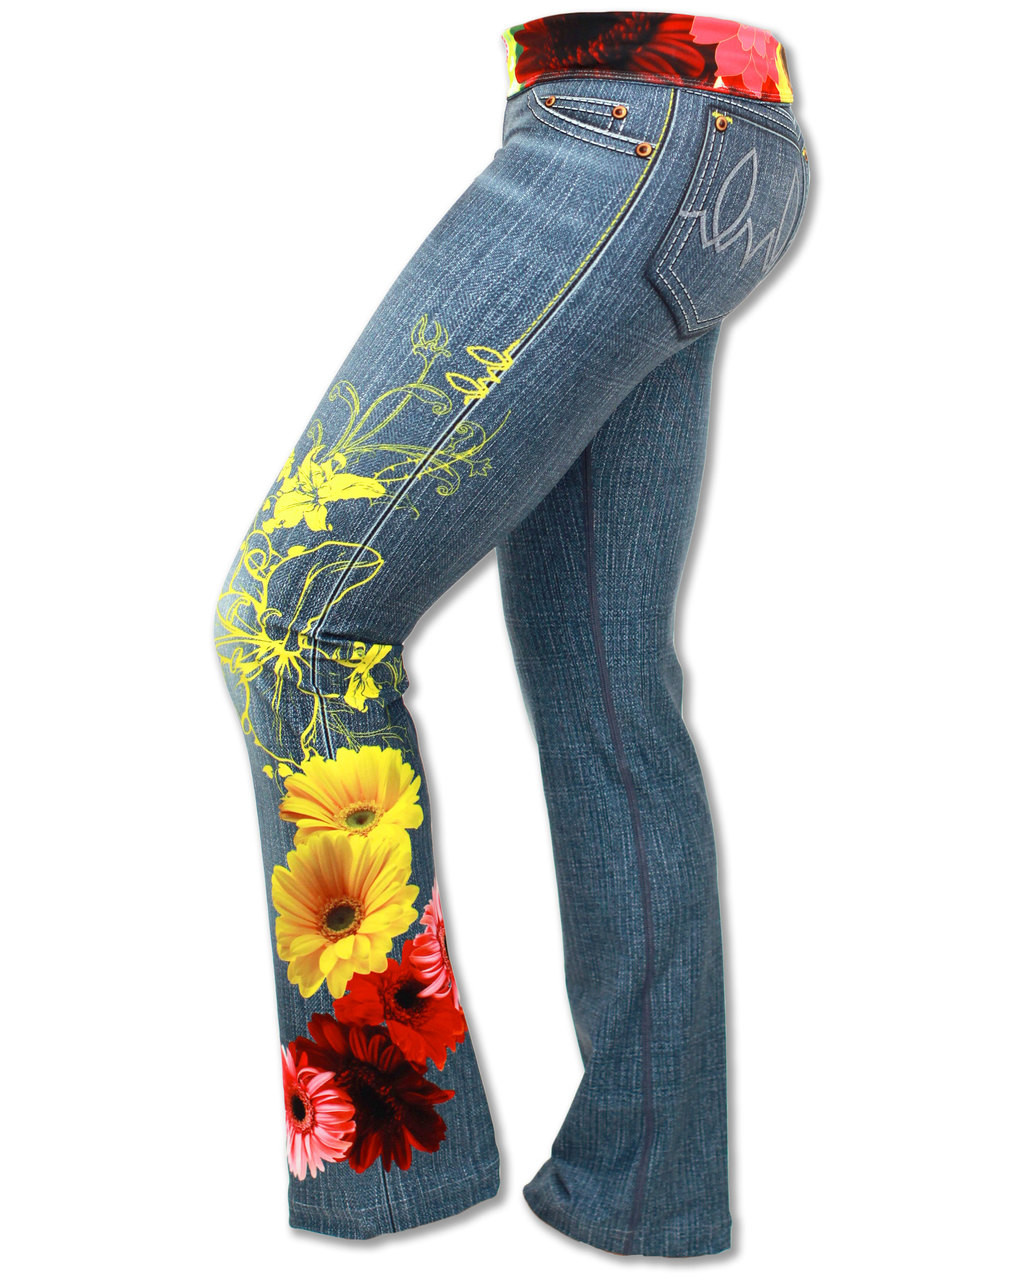 Women's denim wildflower workout, running, yoga pants